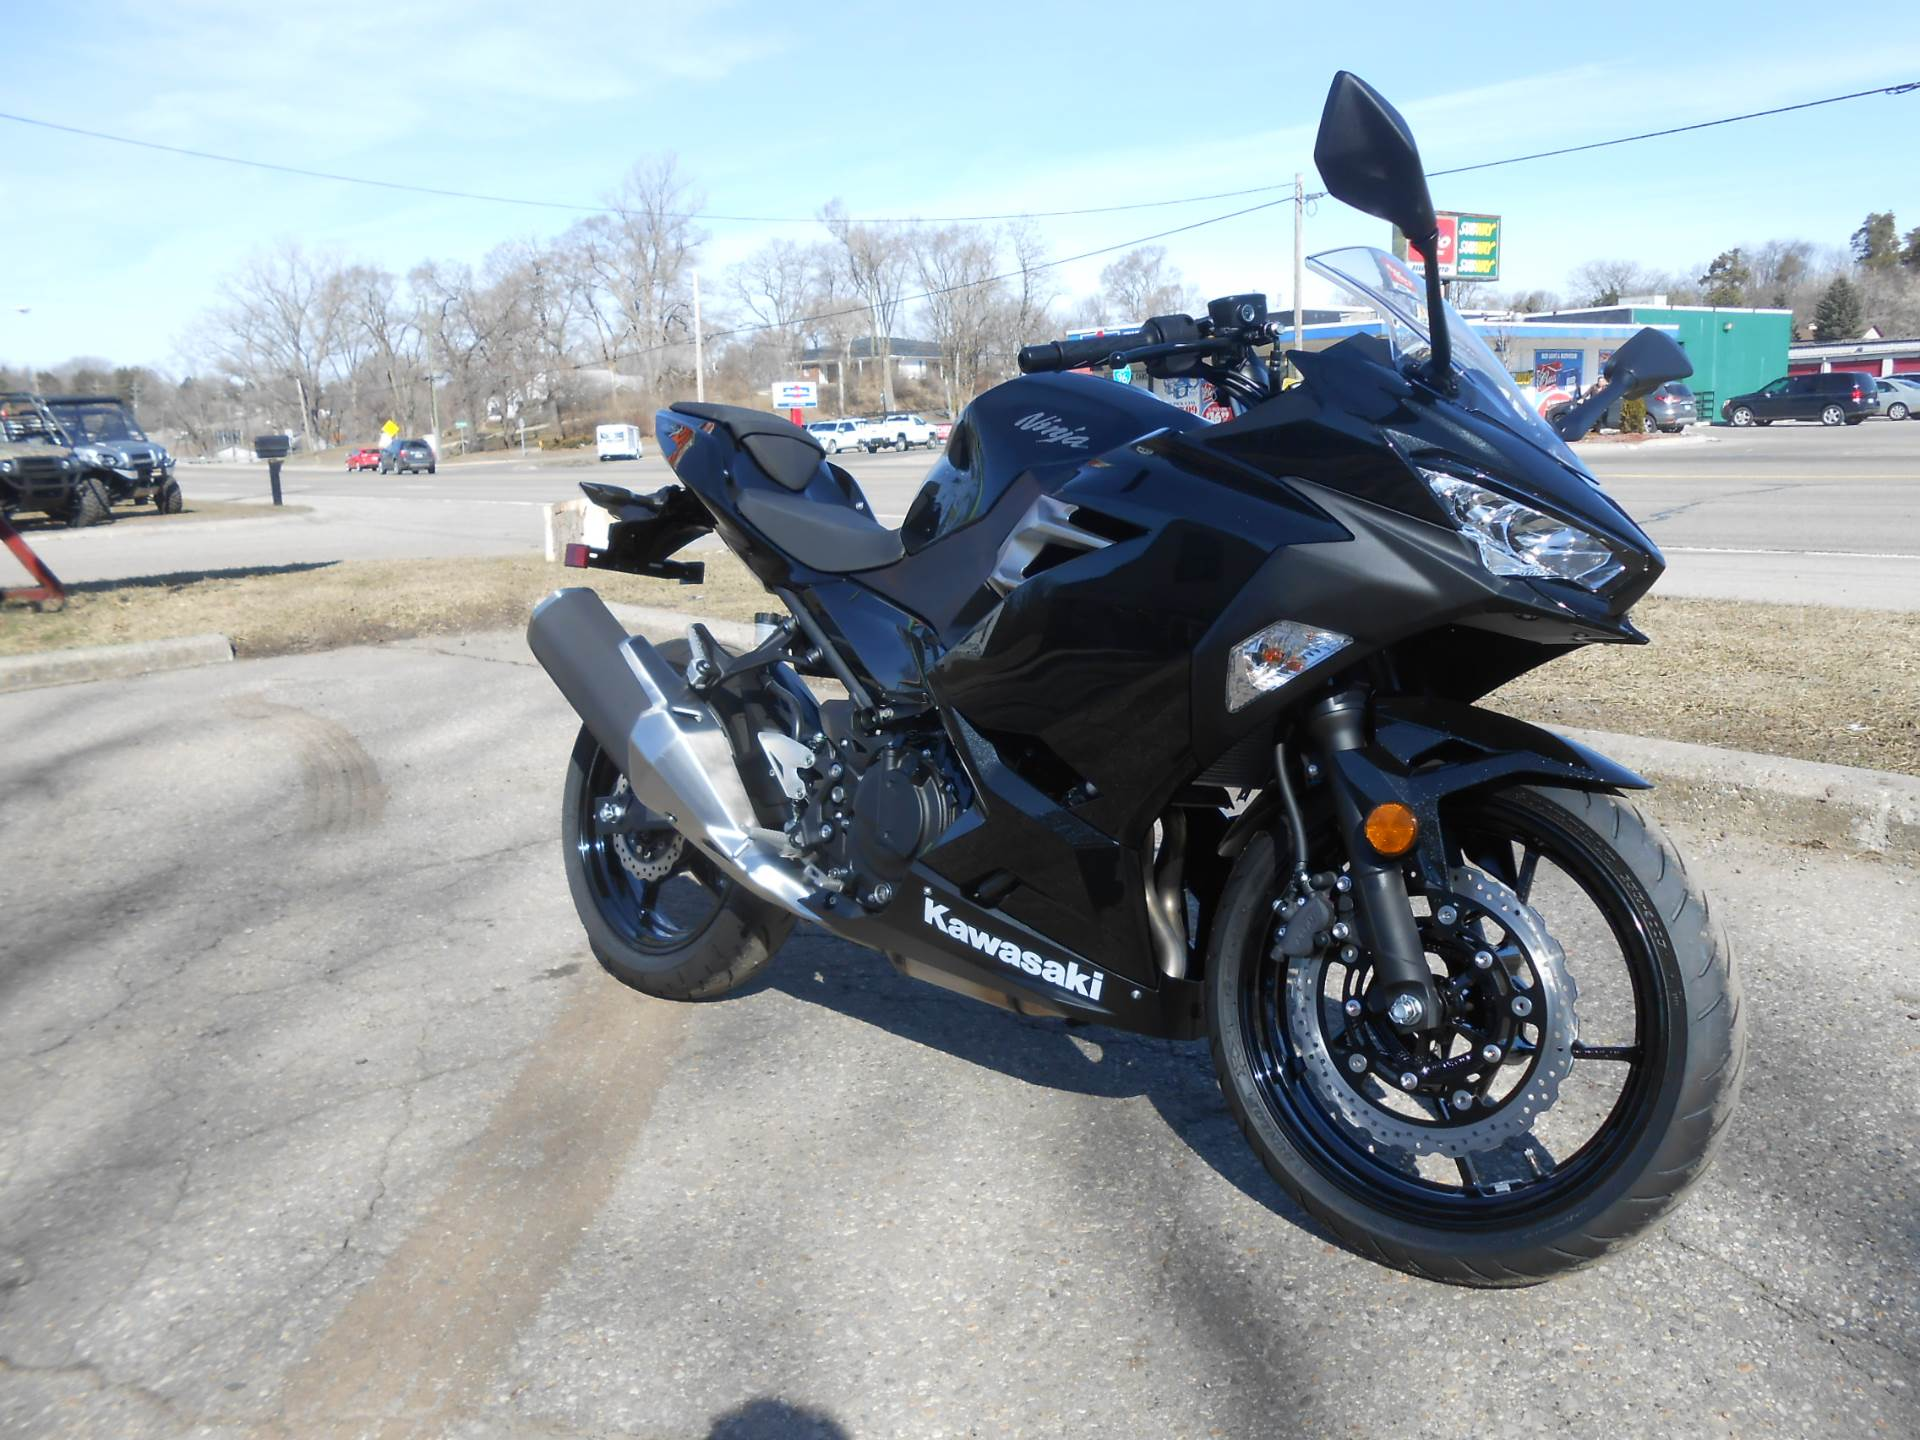 New 2018 Kawasaki Ninja 400 Motorcycles In Howell Mi